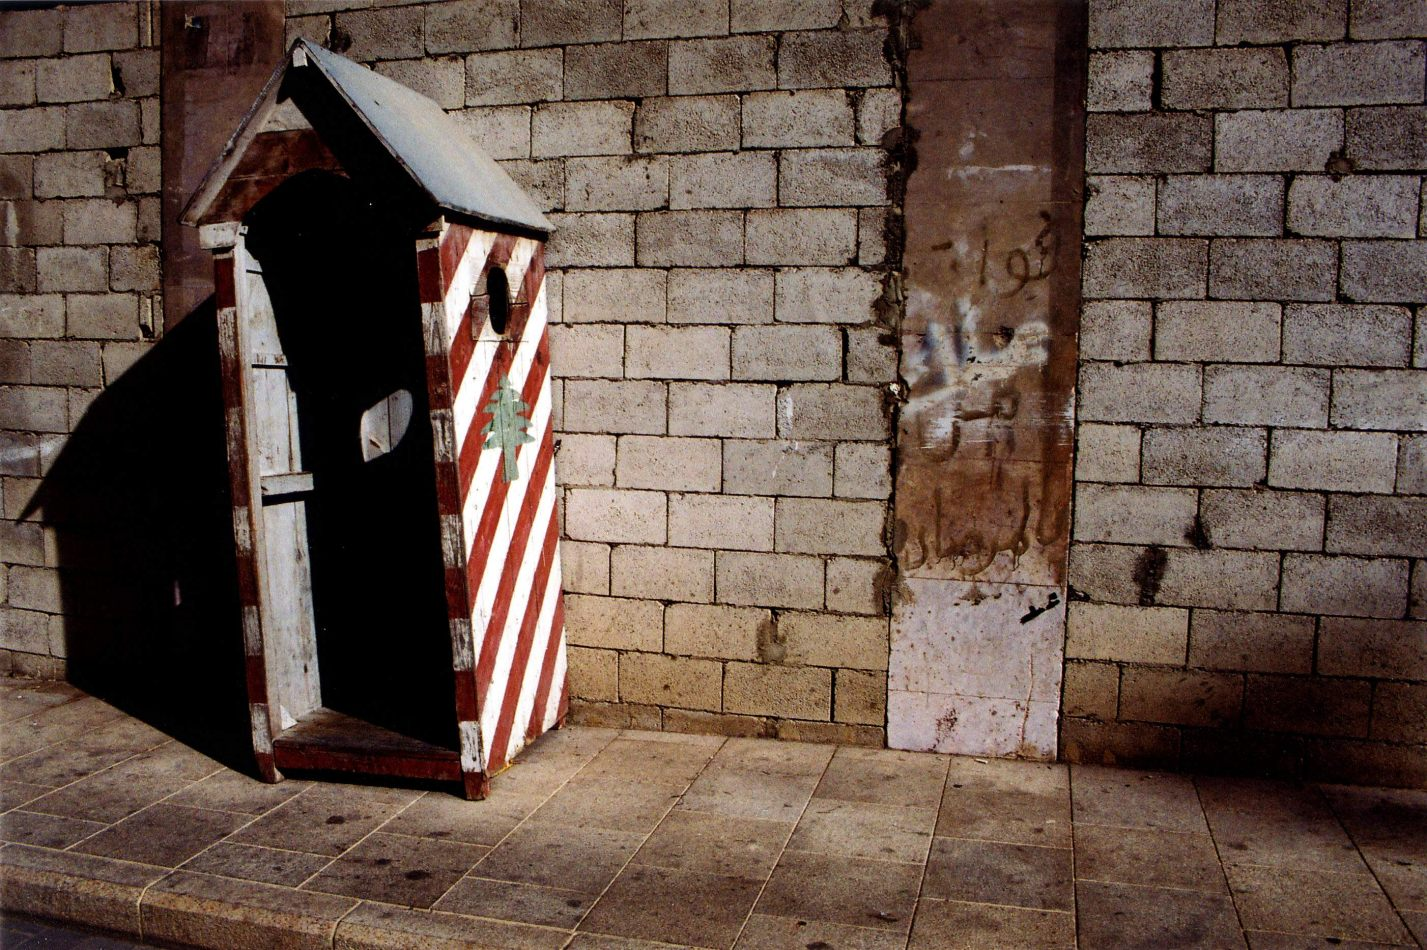 Anthony Ellis Photography: Confessions - The Sentry Box